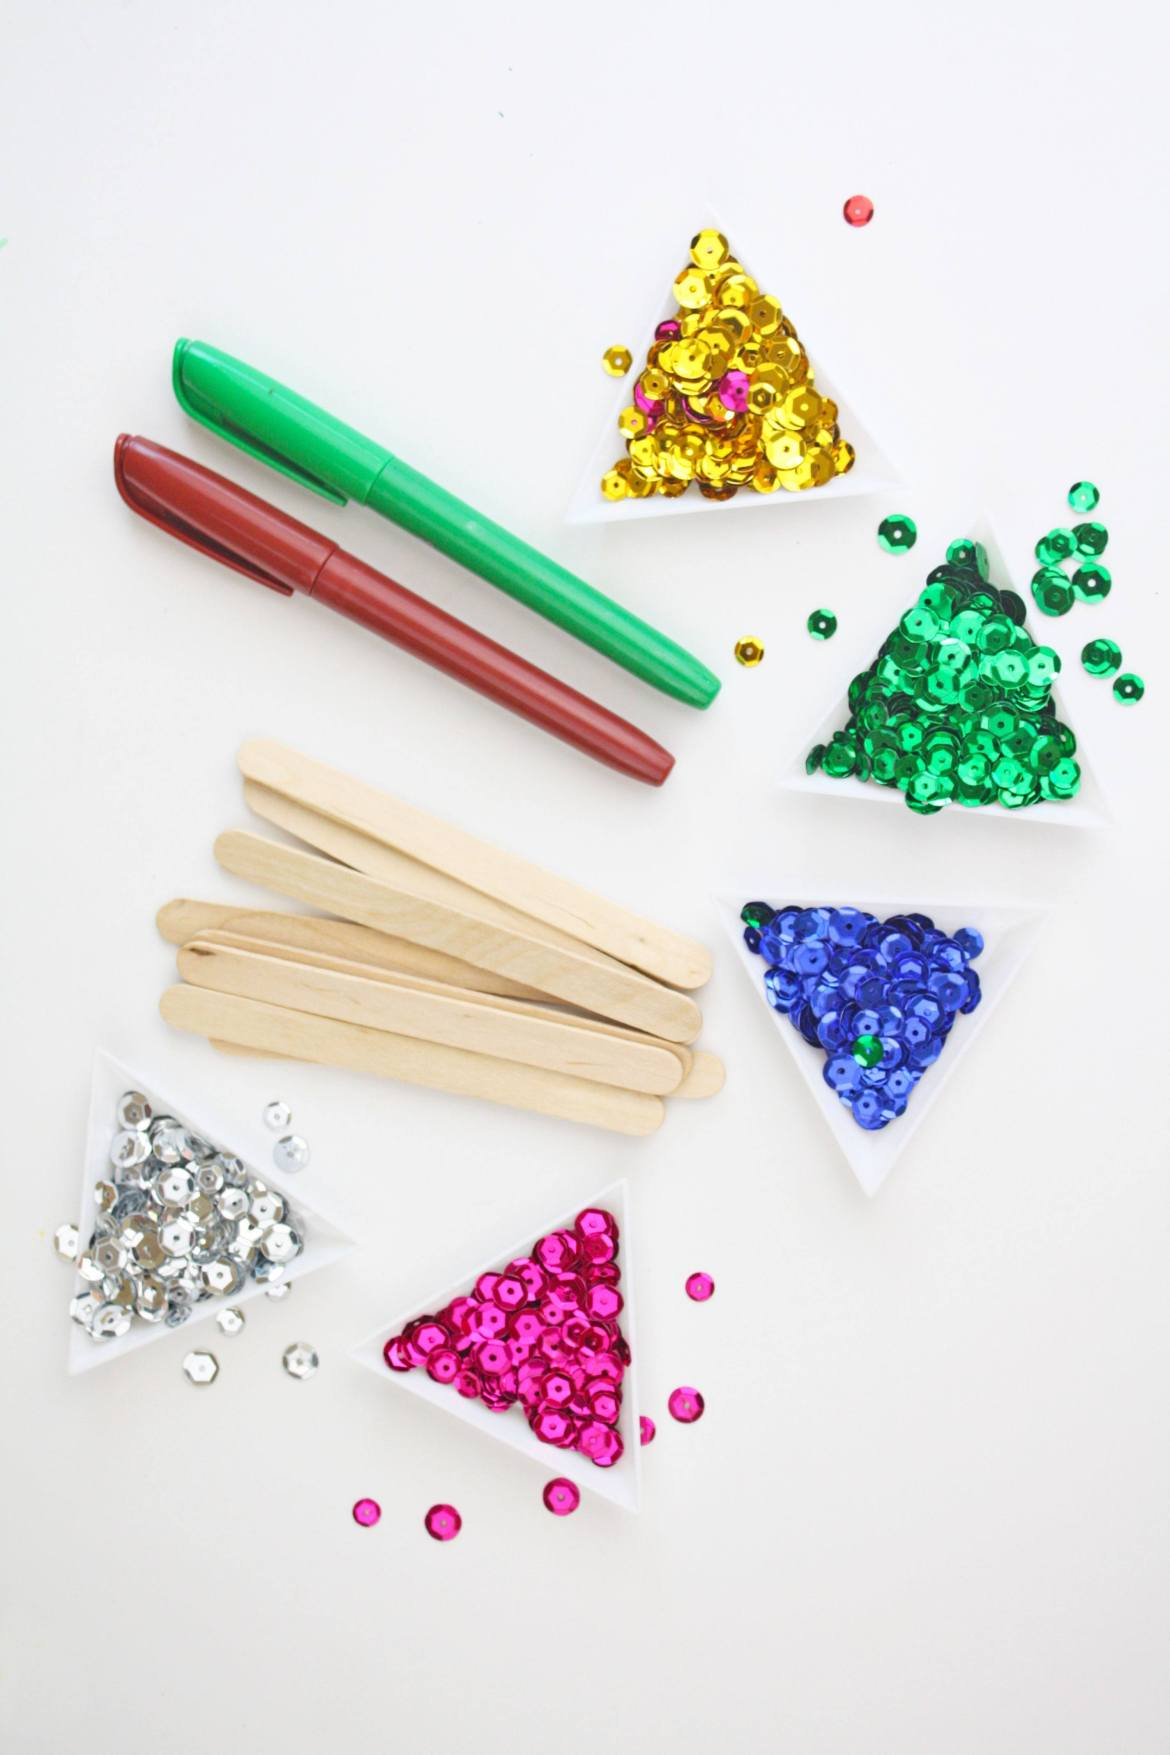 Learn how to make this easy and fun Popsicle Stick Christmas Tree Craft on Love the Day! It's the perfect craft to make with kids this holiday season.